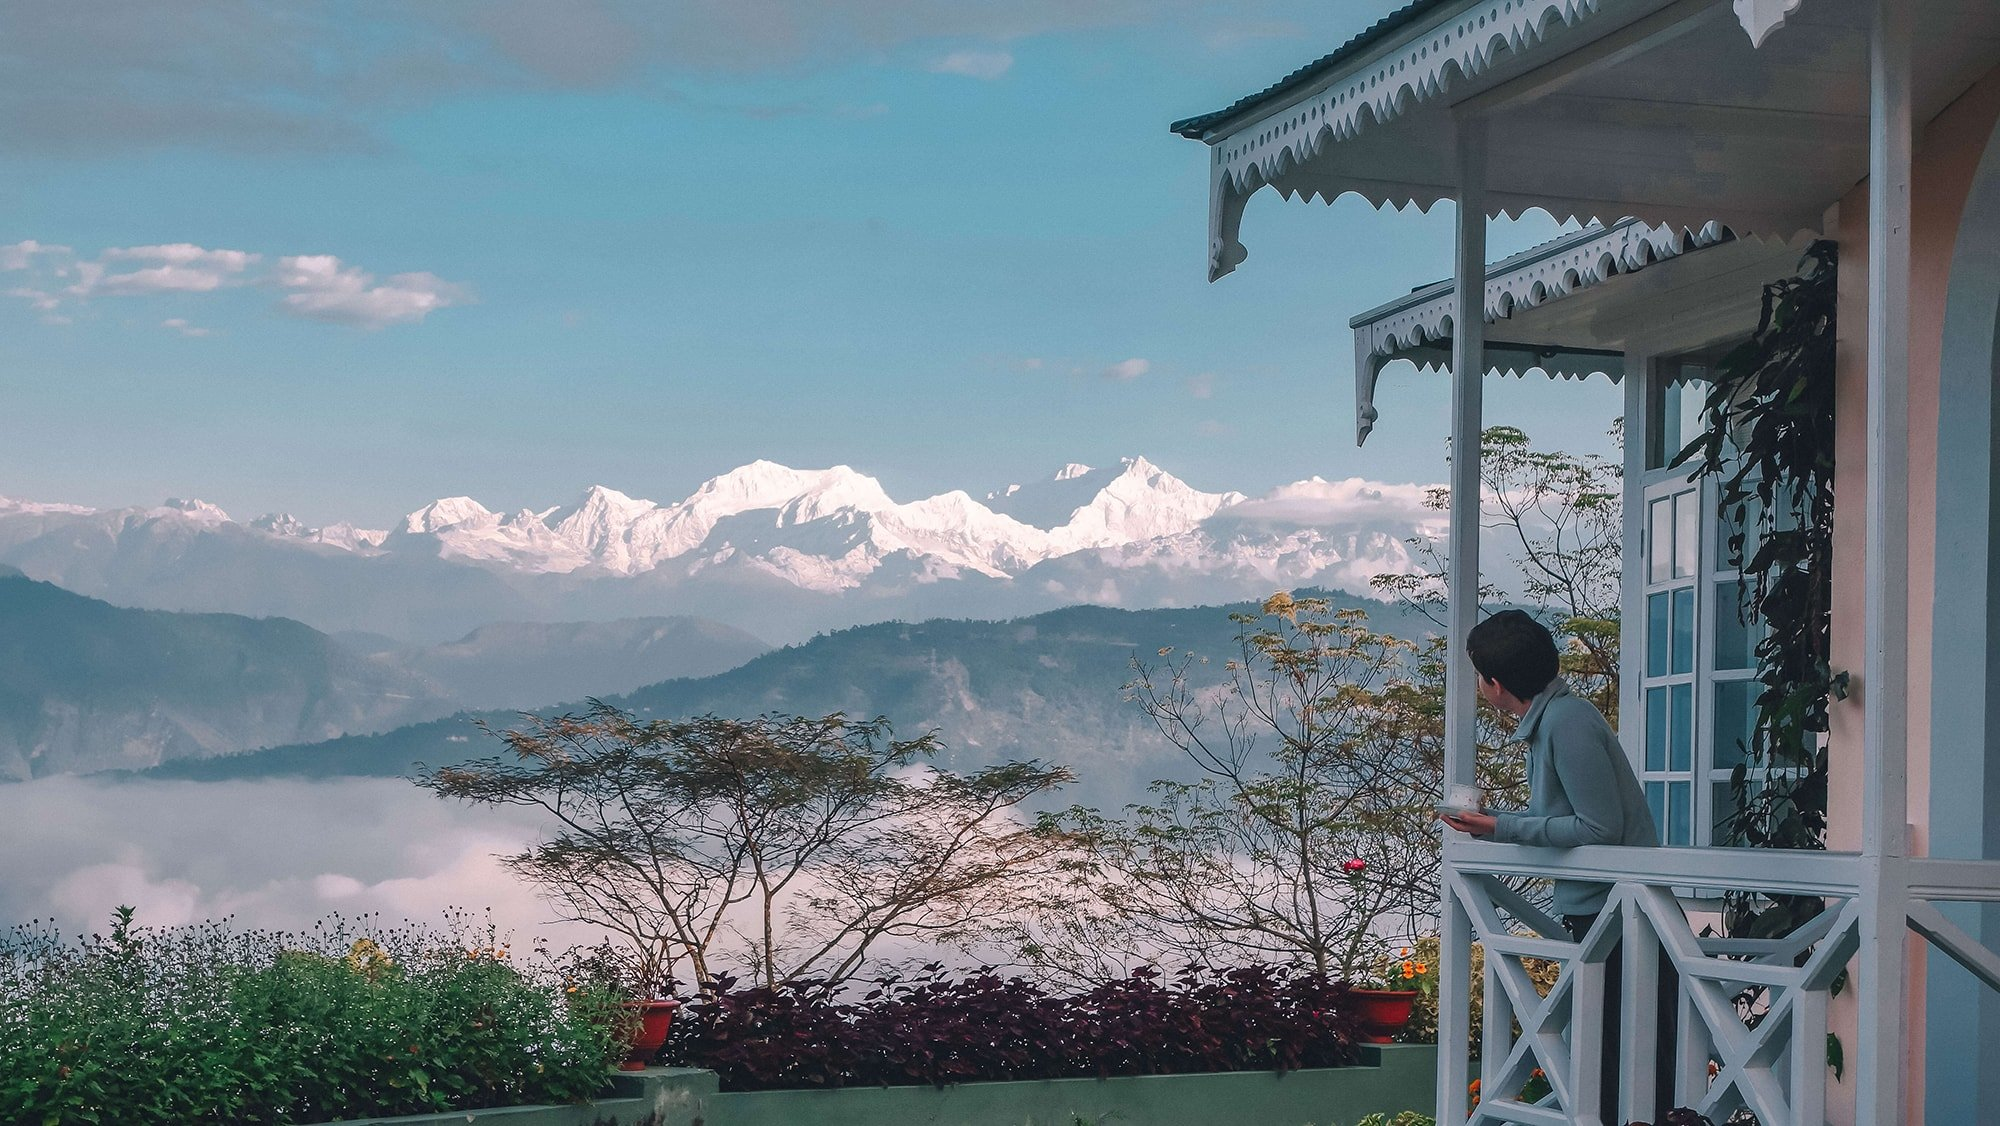 View of Kangchenjunga from Glenburn Tea Estate